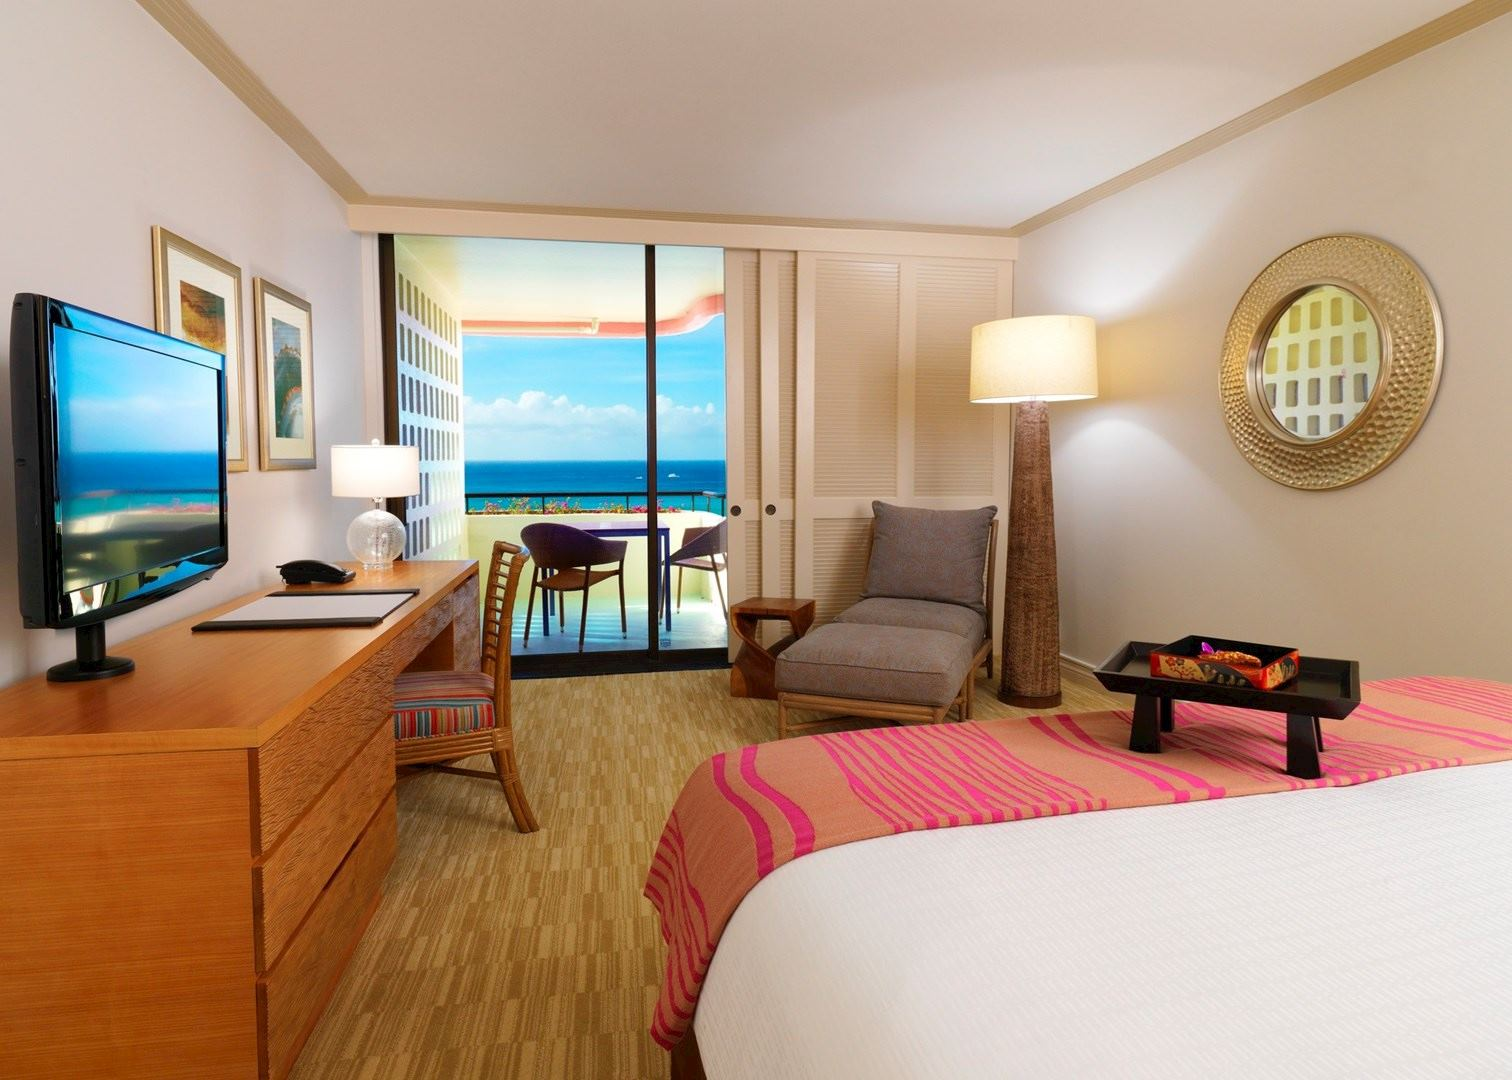 Royal hawaiian hotel hotels in oahu audley travel for Hotel royal